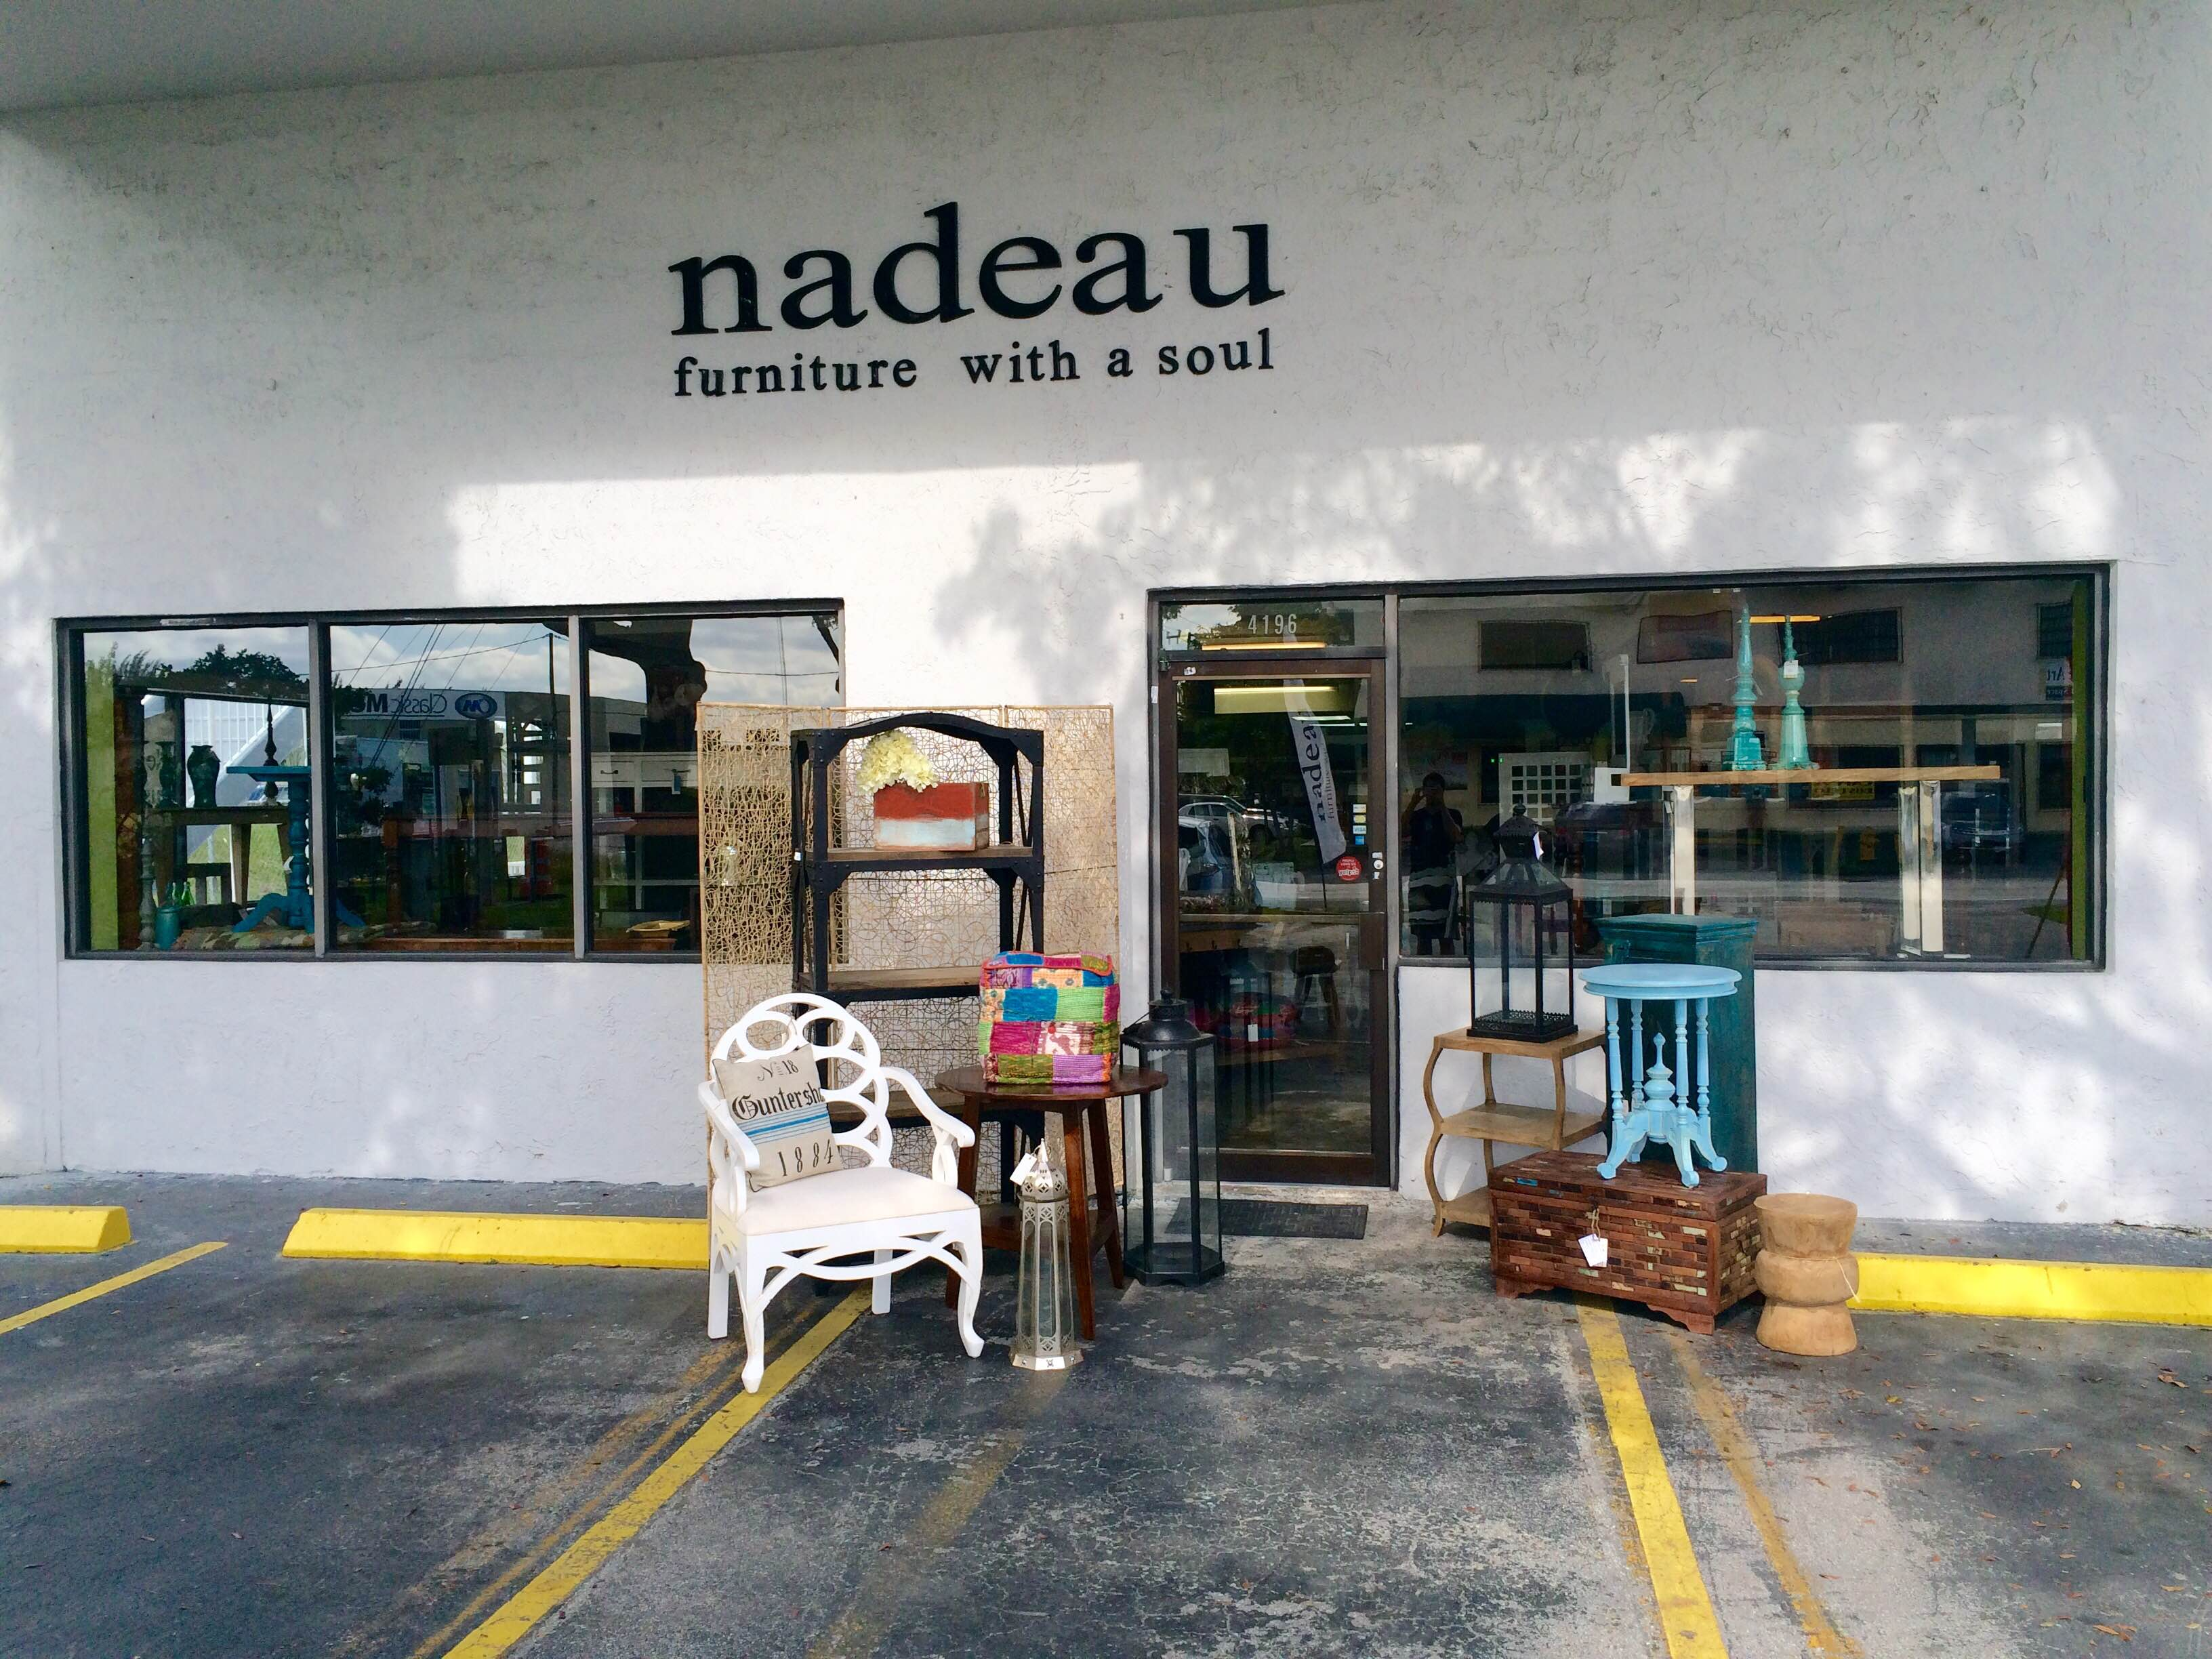 Nadeau - Furniture with a Soul in Miami